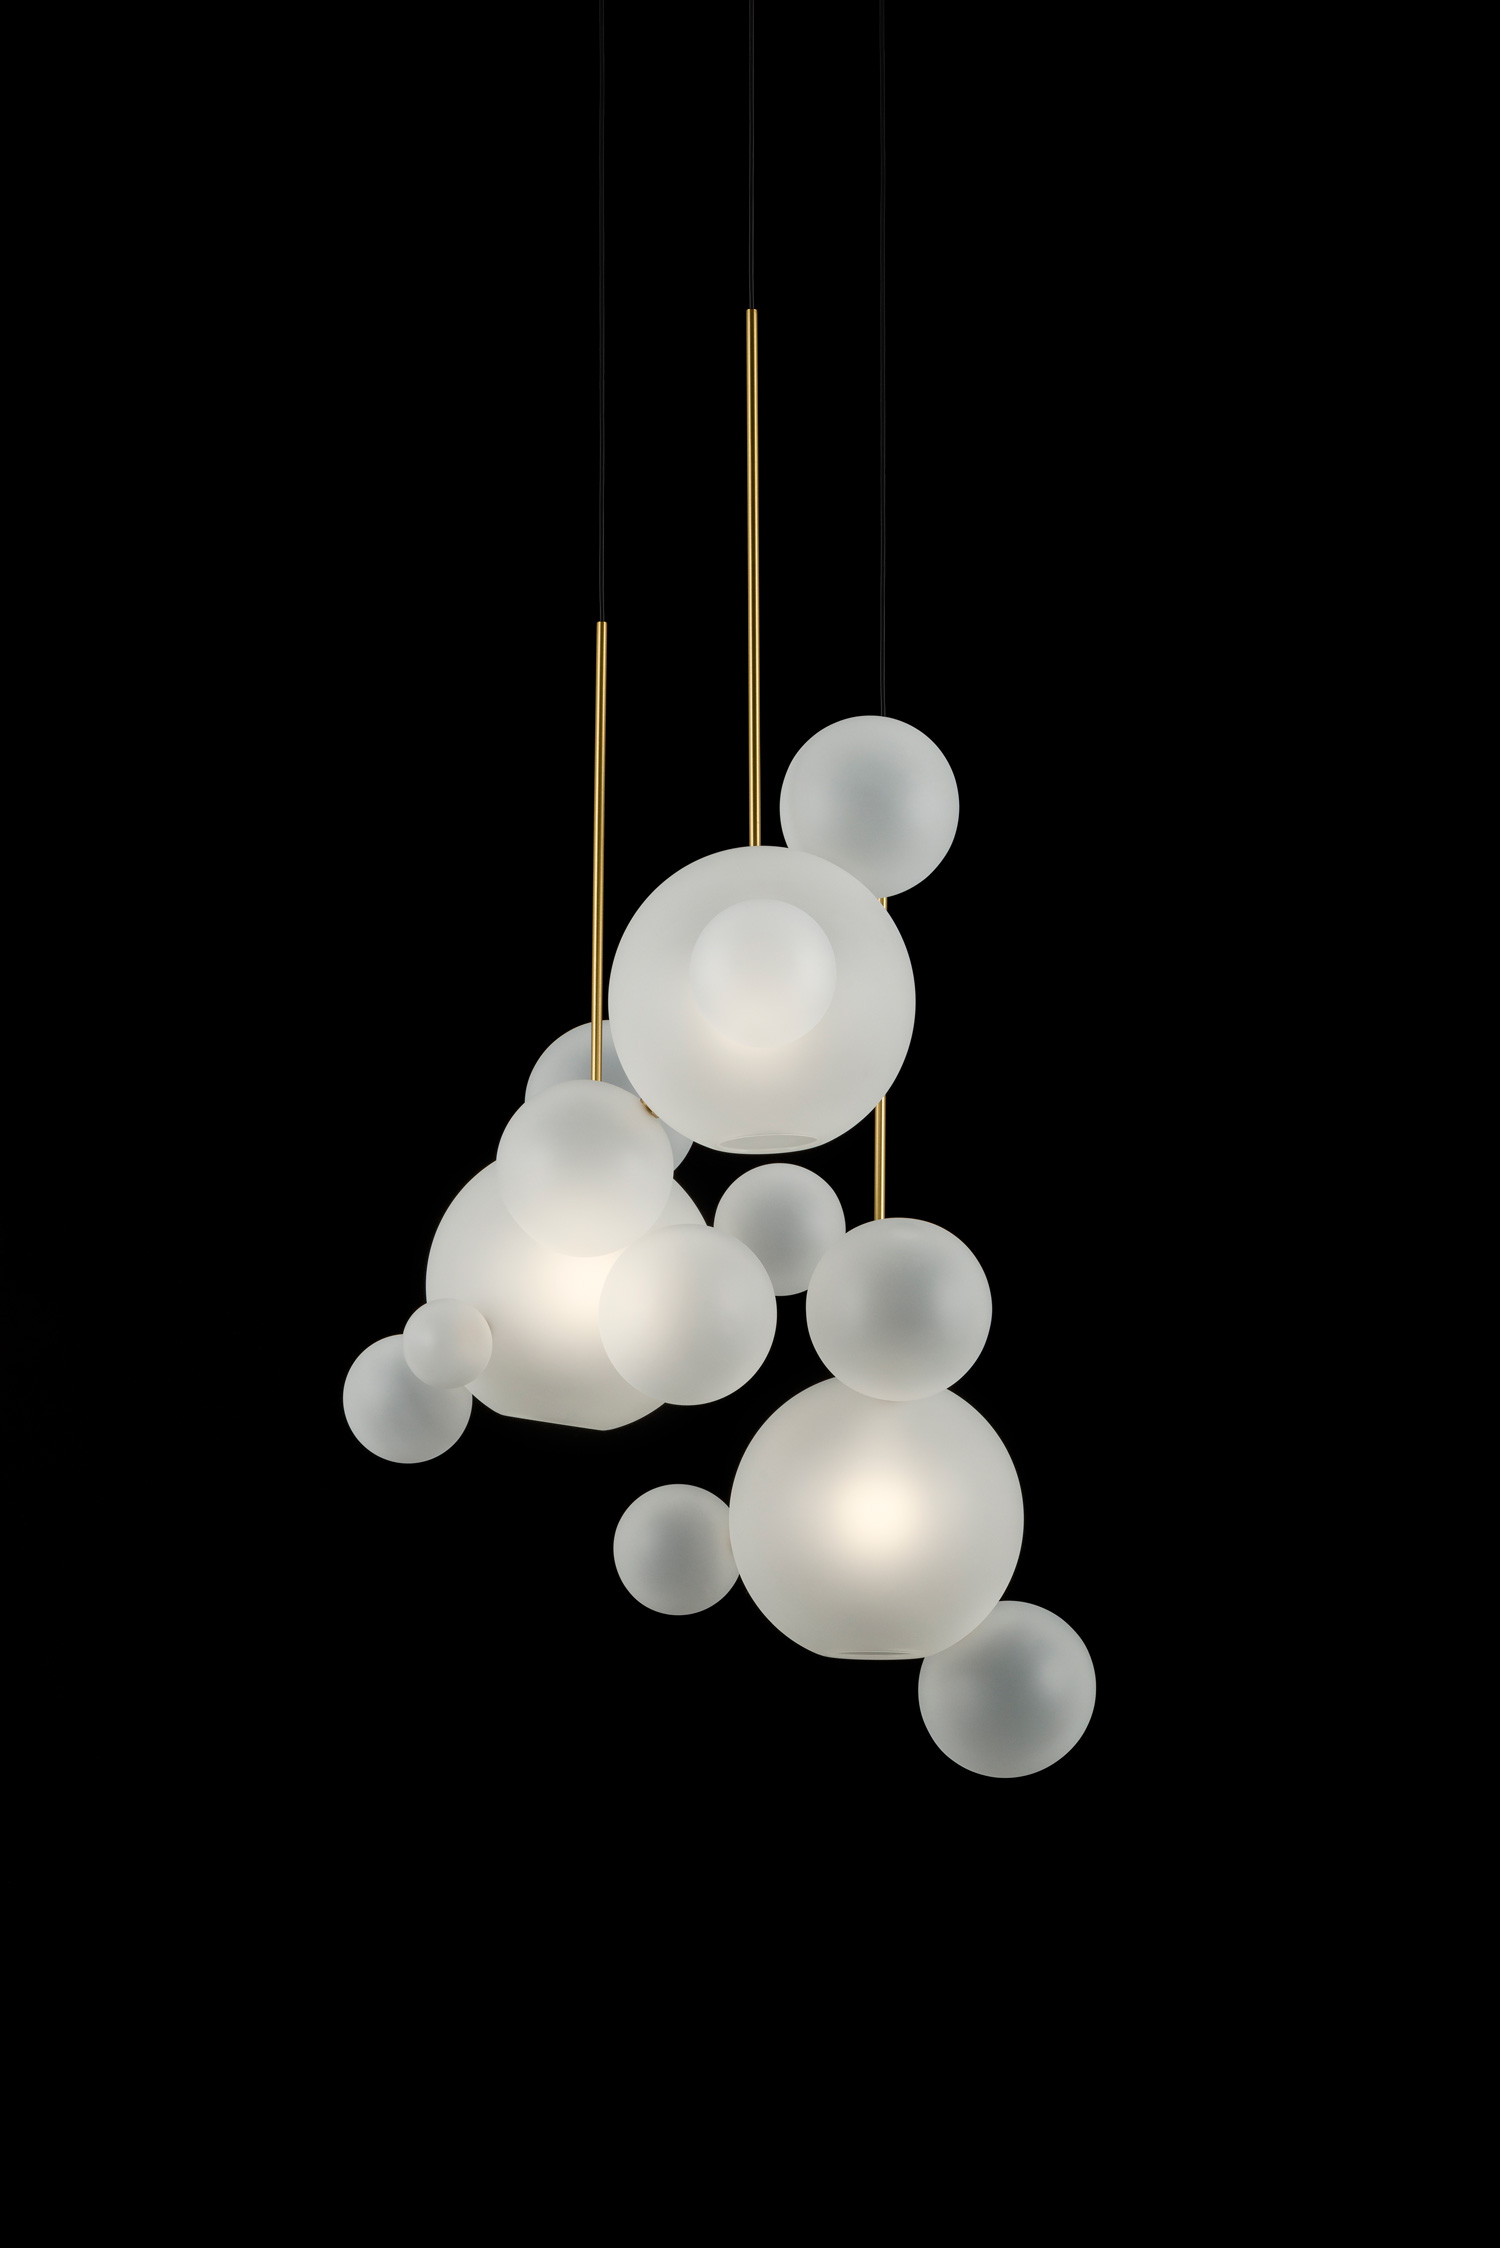 Giopato_Coombes_Bolle_Frosted_Circular_Chandelier_14_Bubbles_Ph_FedericoVilla.jpg